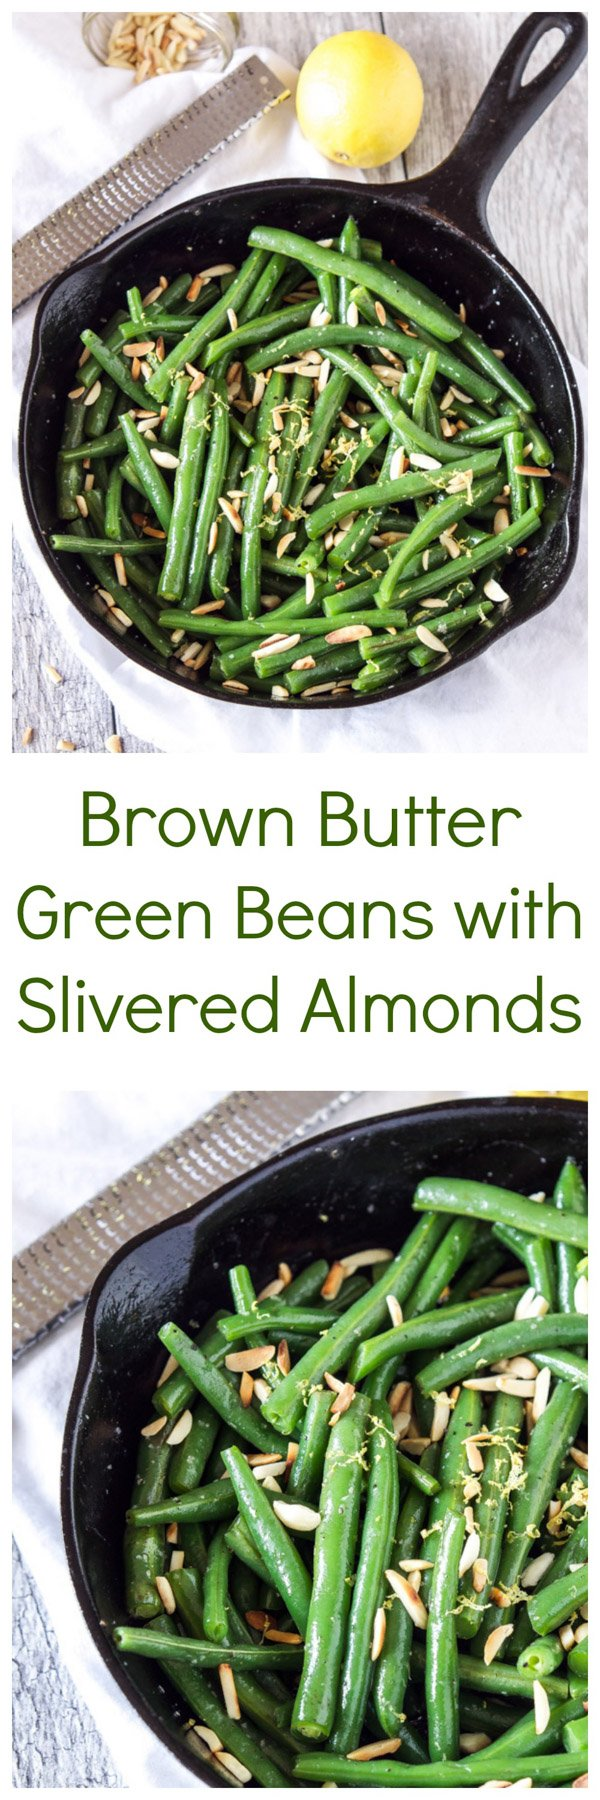 Brown Butter Green Beans with Slivered Almonds | Recipe Runner | Crisp green beans covered with brown butter, toasted almonds, and lemon zest are a simple and delicious side dish!